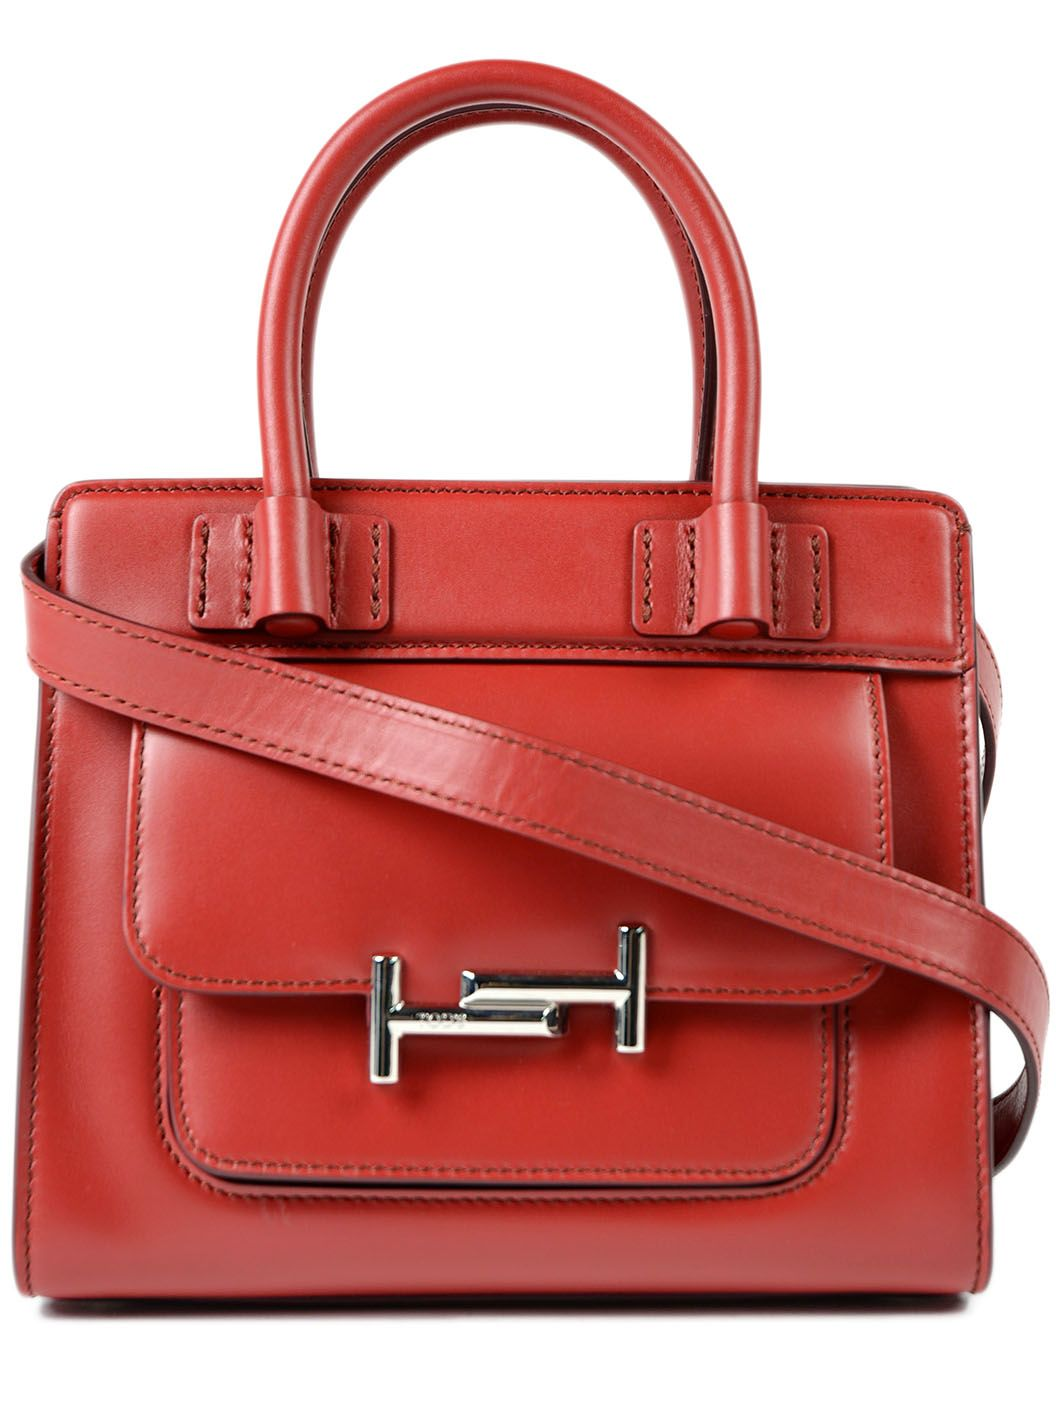 Tods Double T Buckled Tote